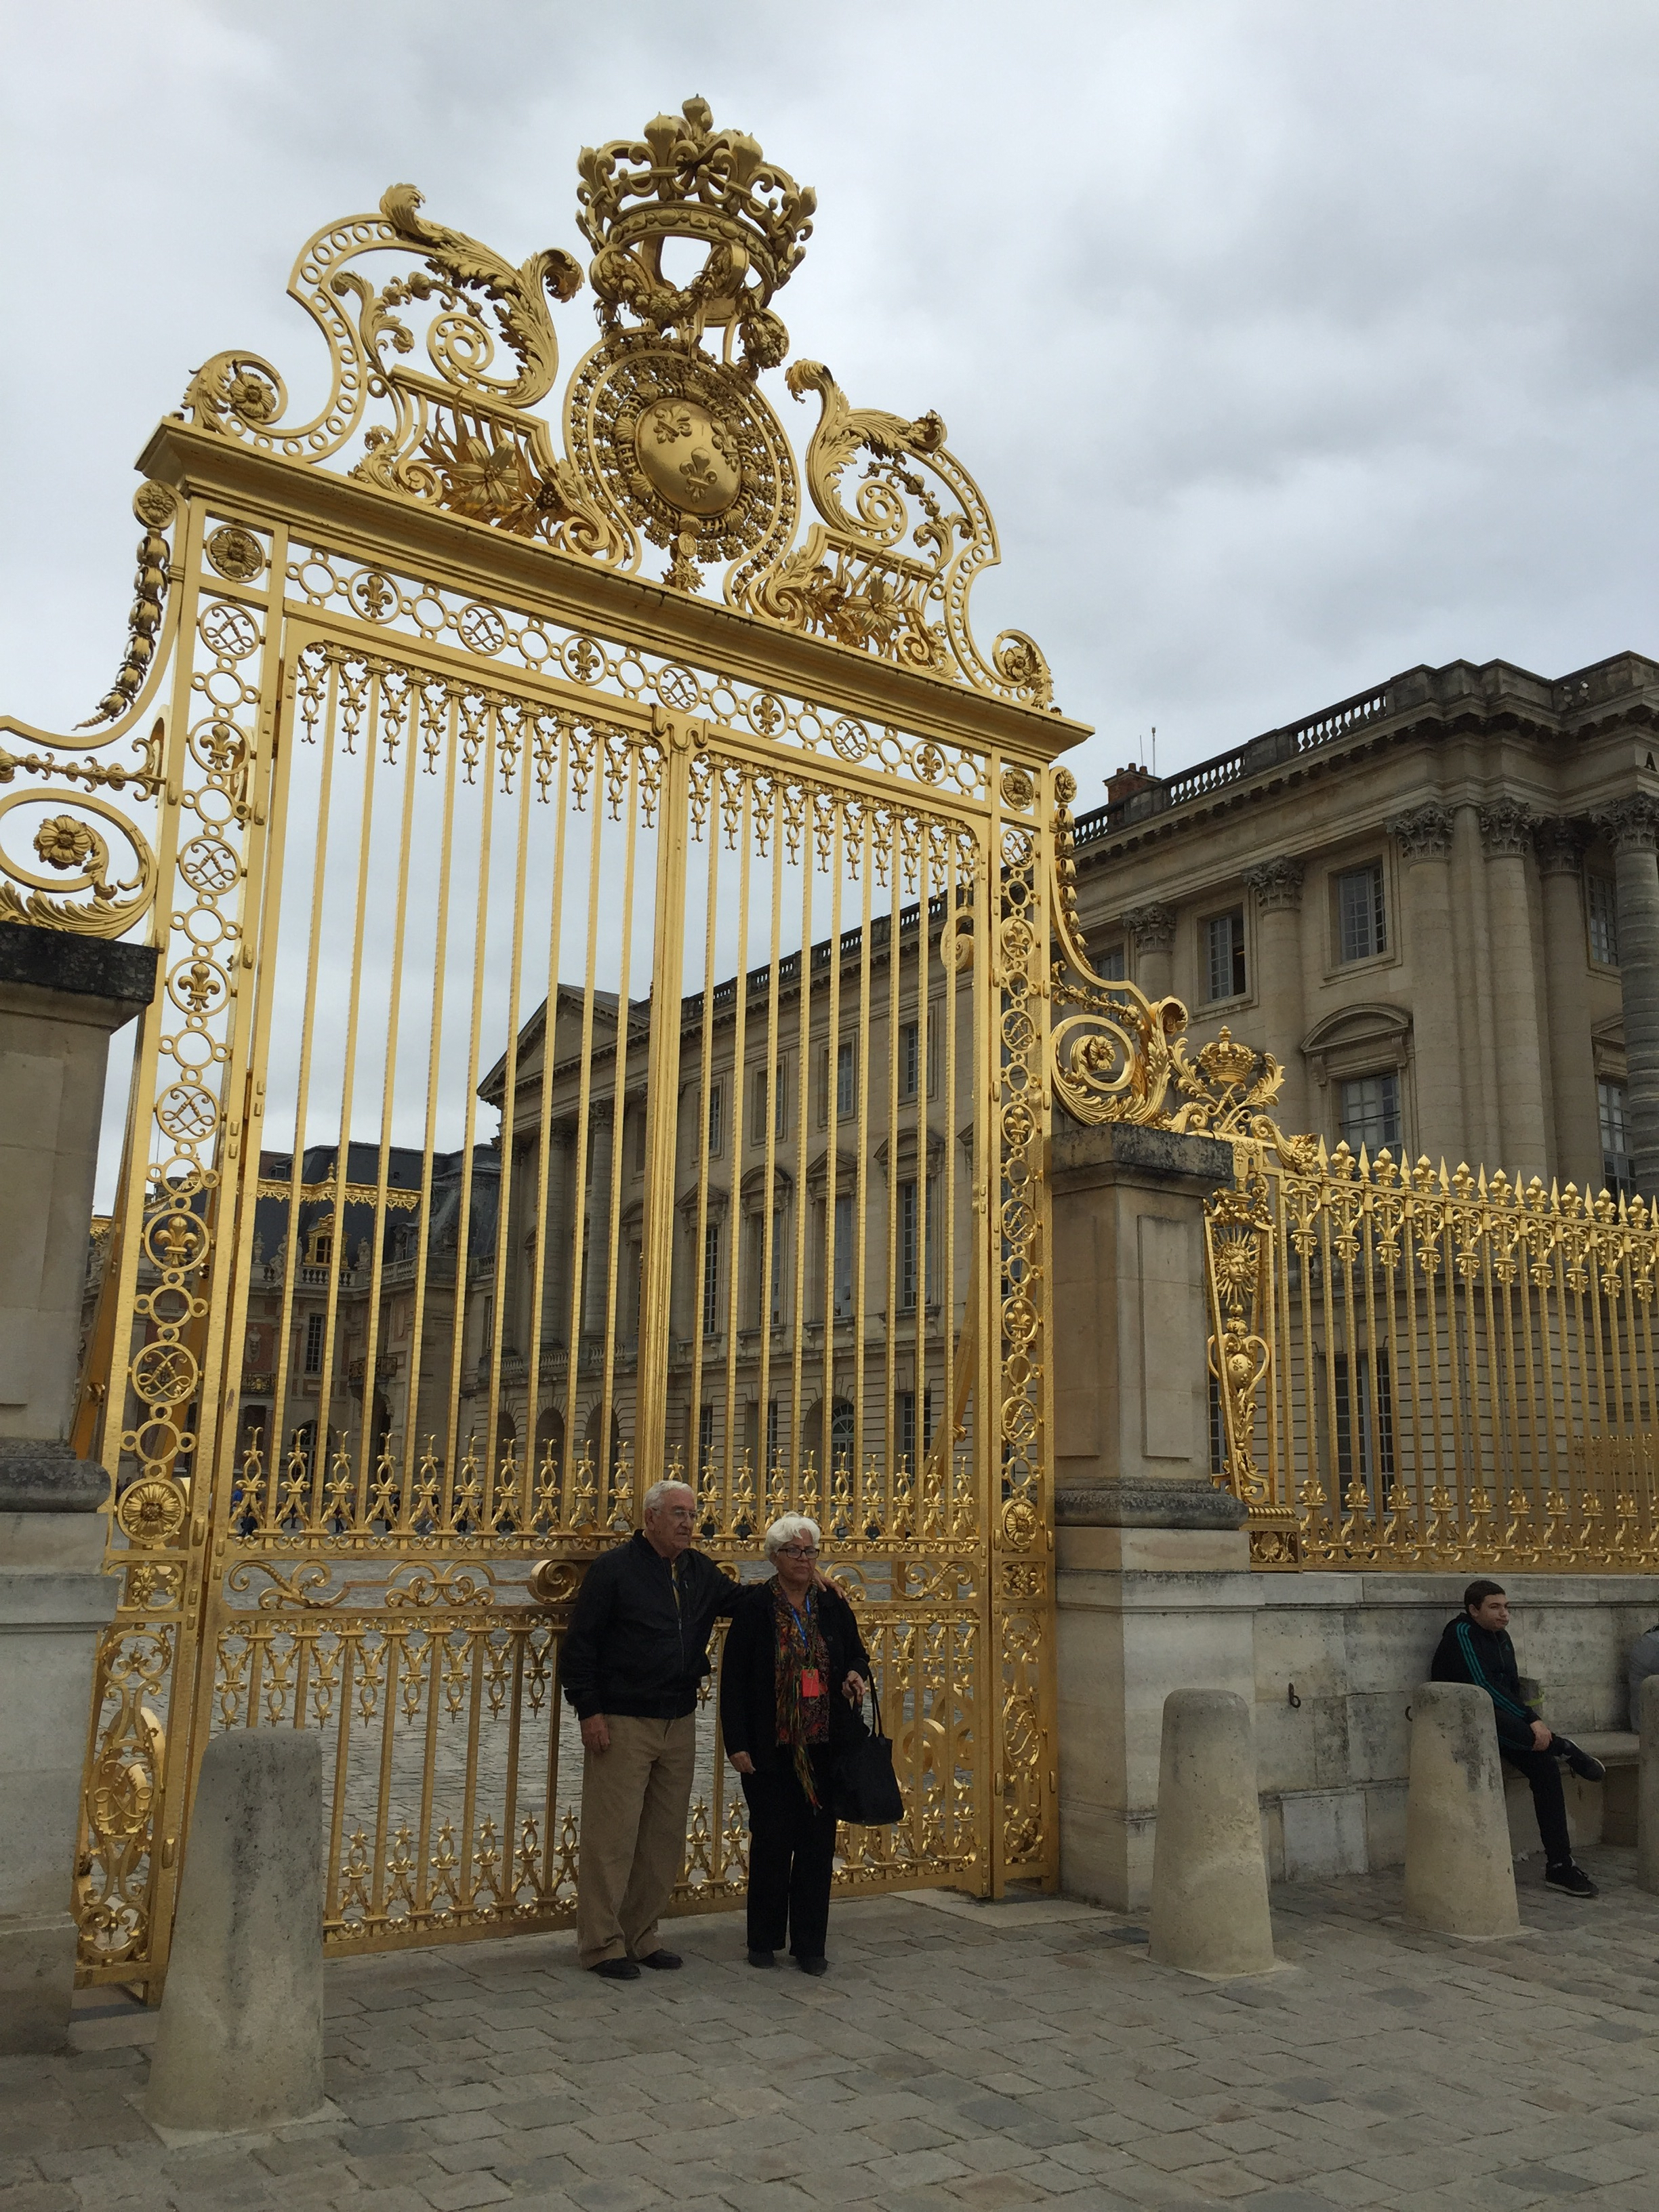 Gate at the Chateau de Versailles